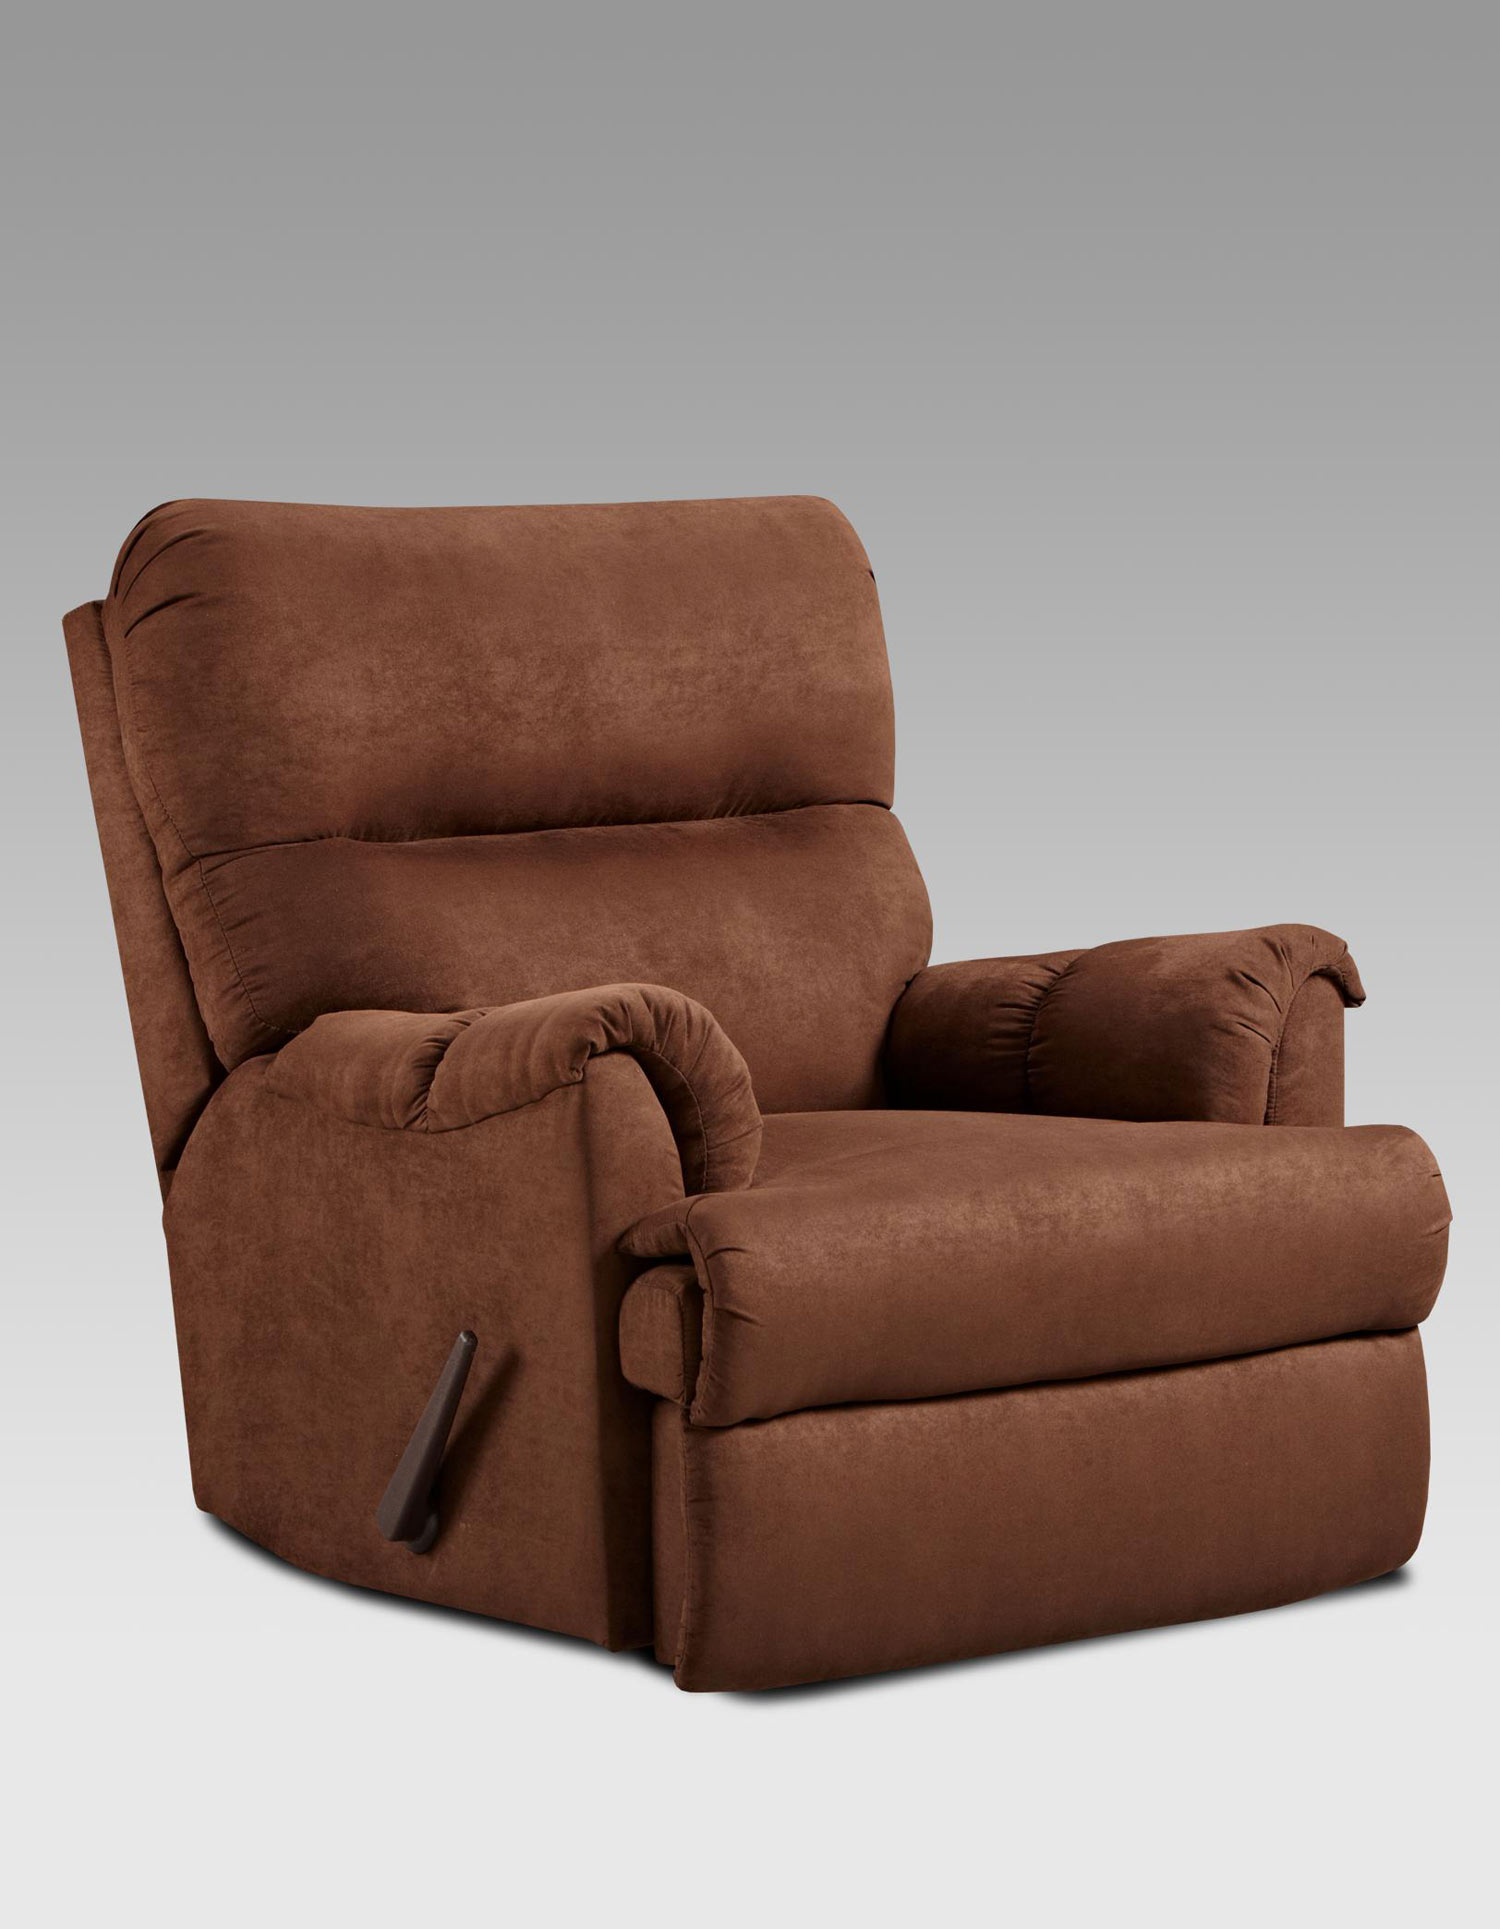 chelsea home lucas chaise rocker recliner aruba. Black Bedroom Furniture Sets. Home Design Ideas